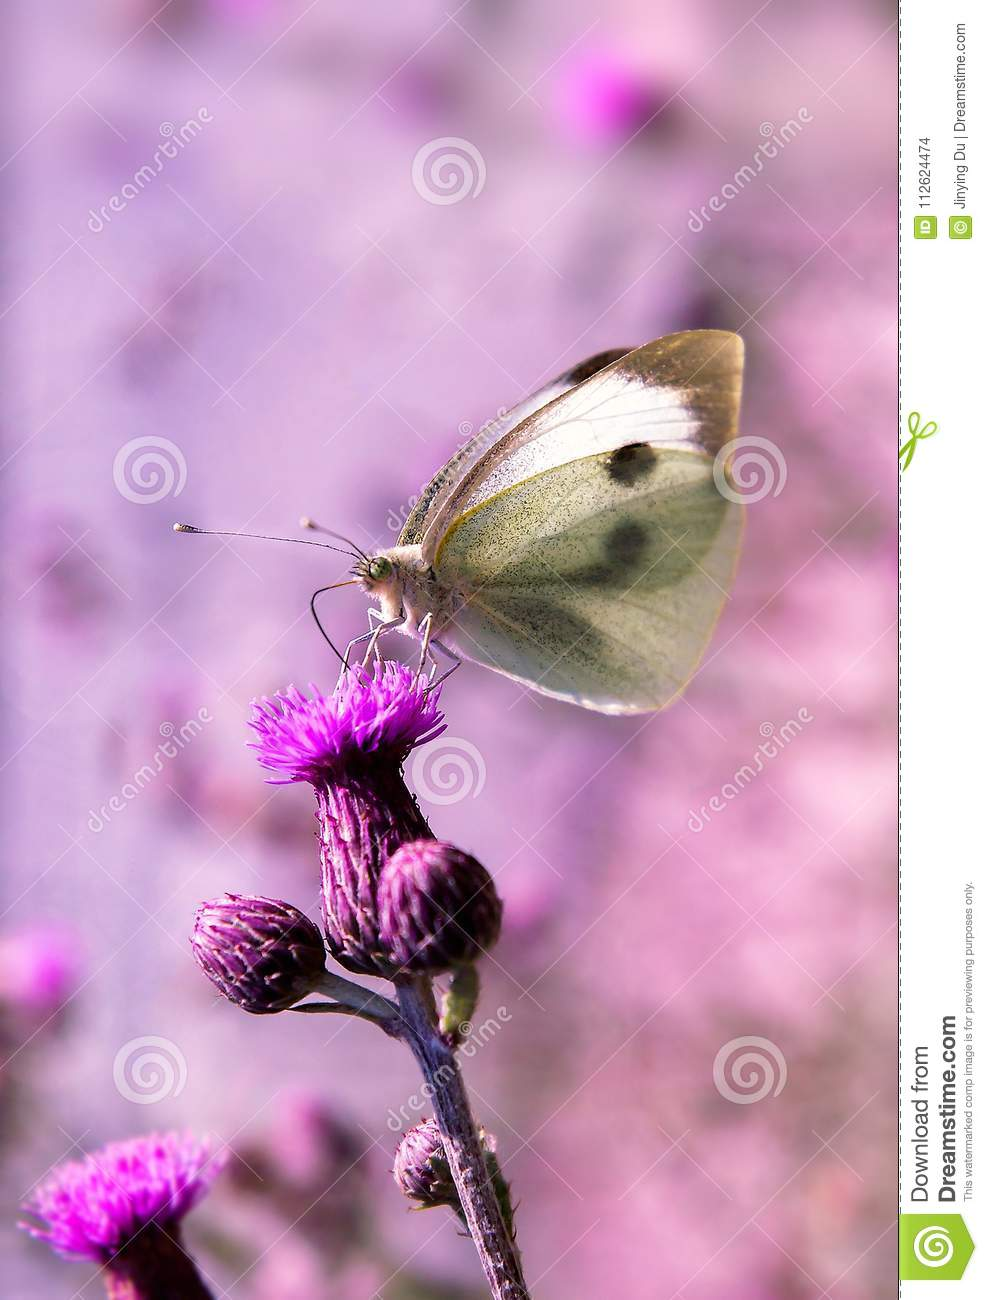 A colorful butterfly is standing on a piece of lavender.